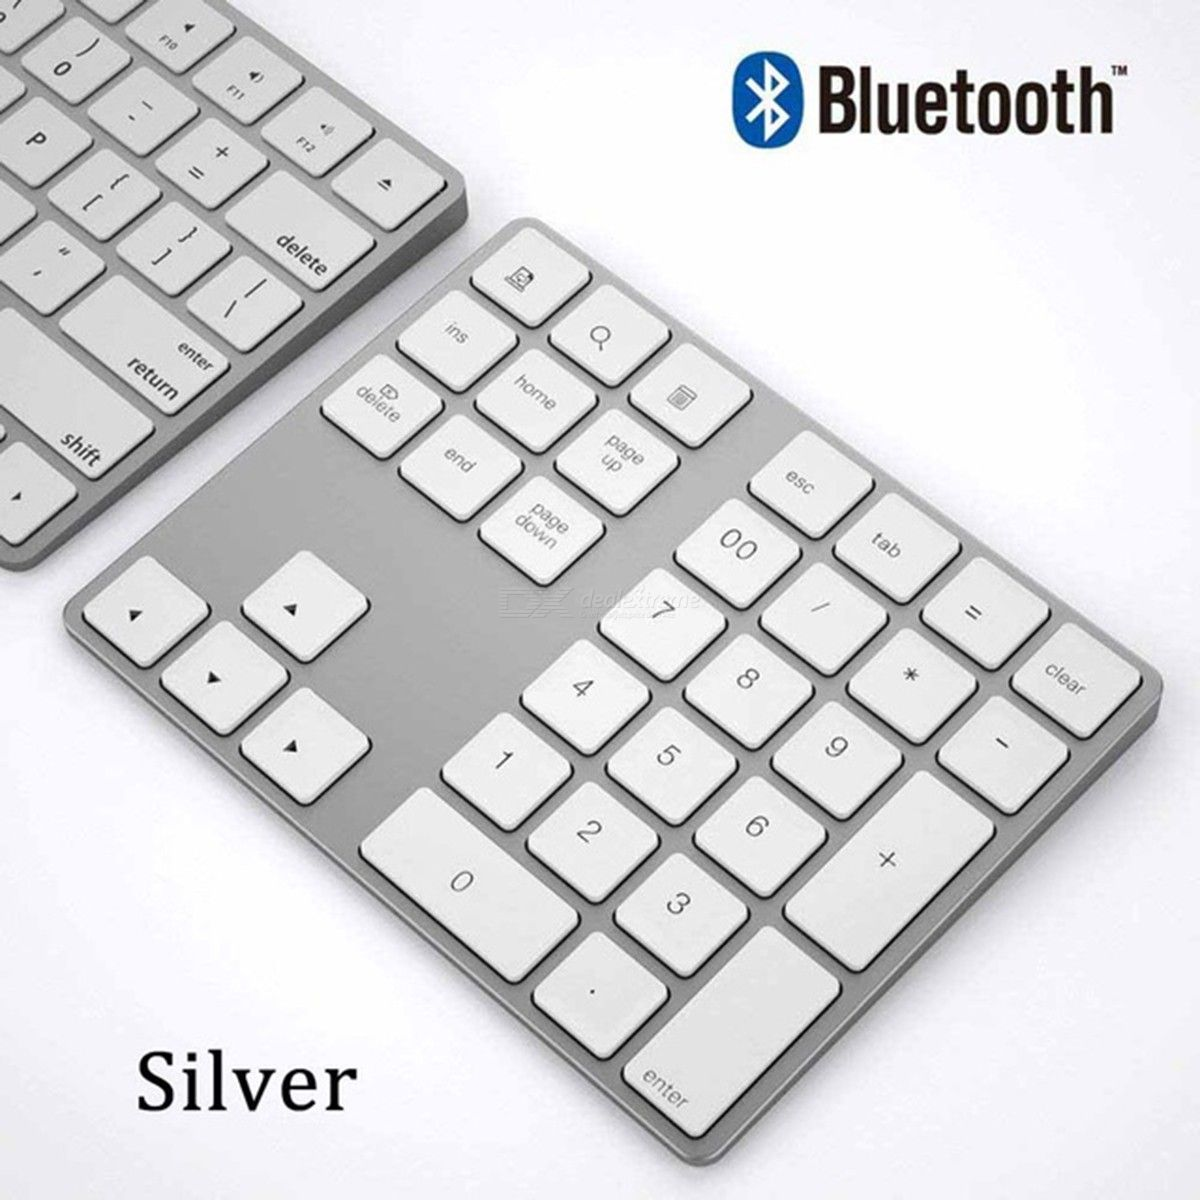 2e846932ace Wireless Numeric Keypad Mini Aluminum Number Keyboard For Window IOS Mac OS  Android - Free shipping - DealExtreme